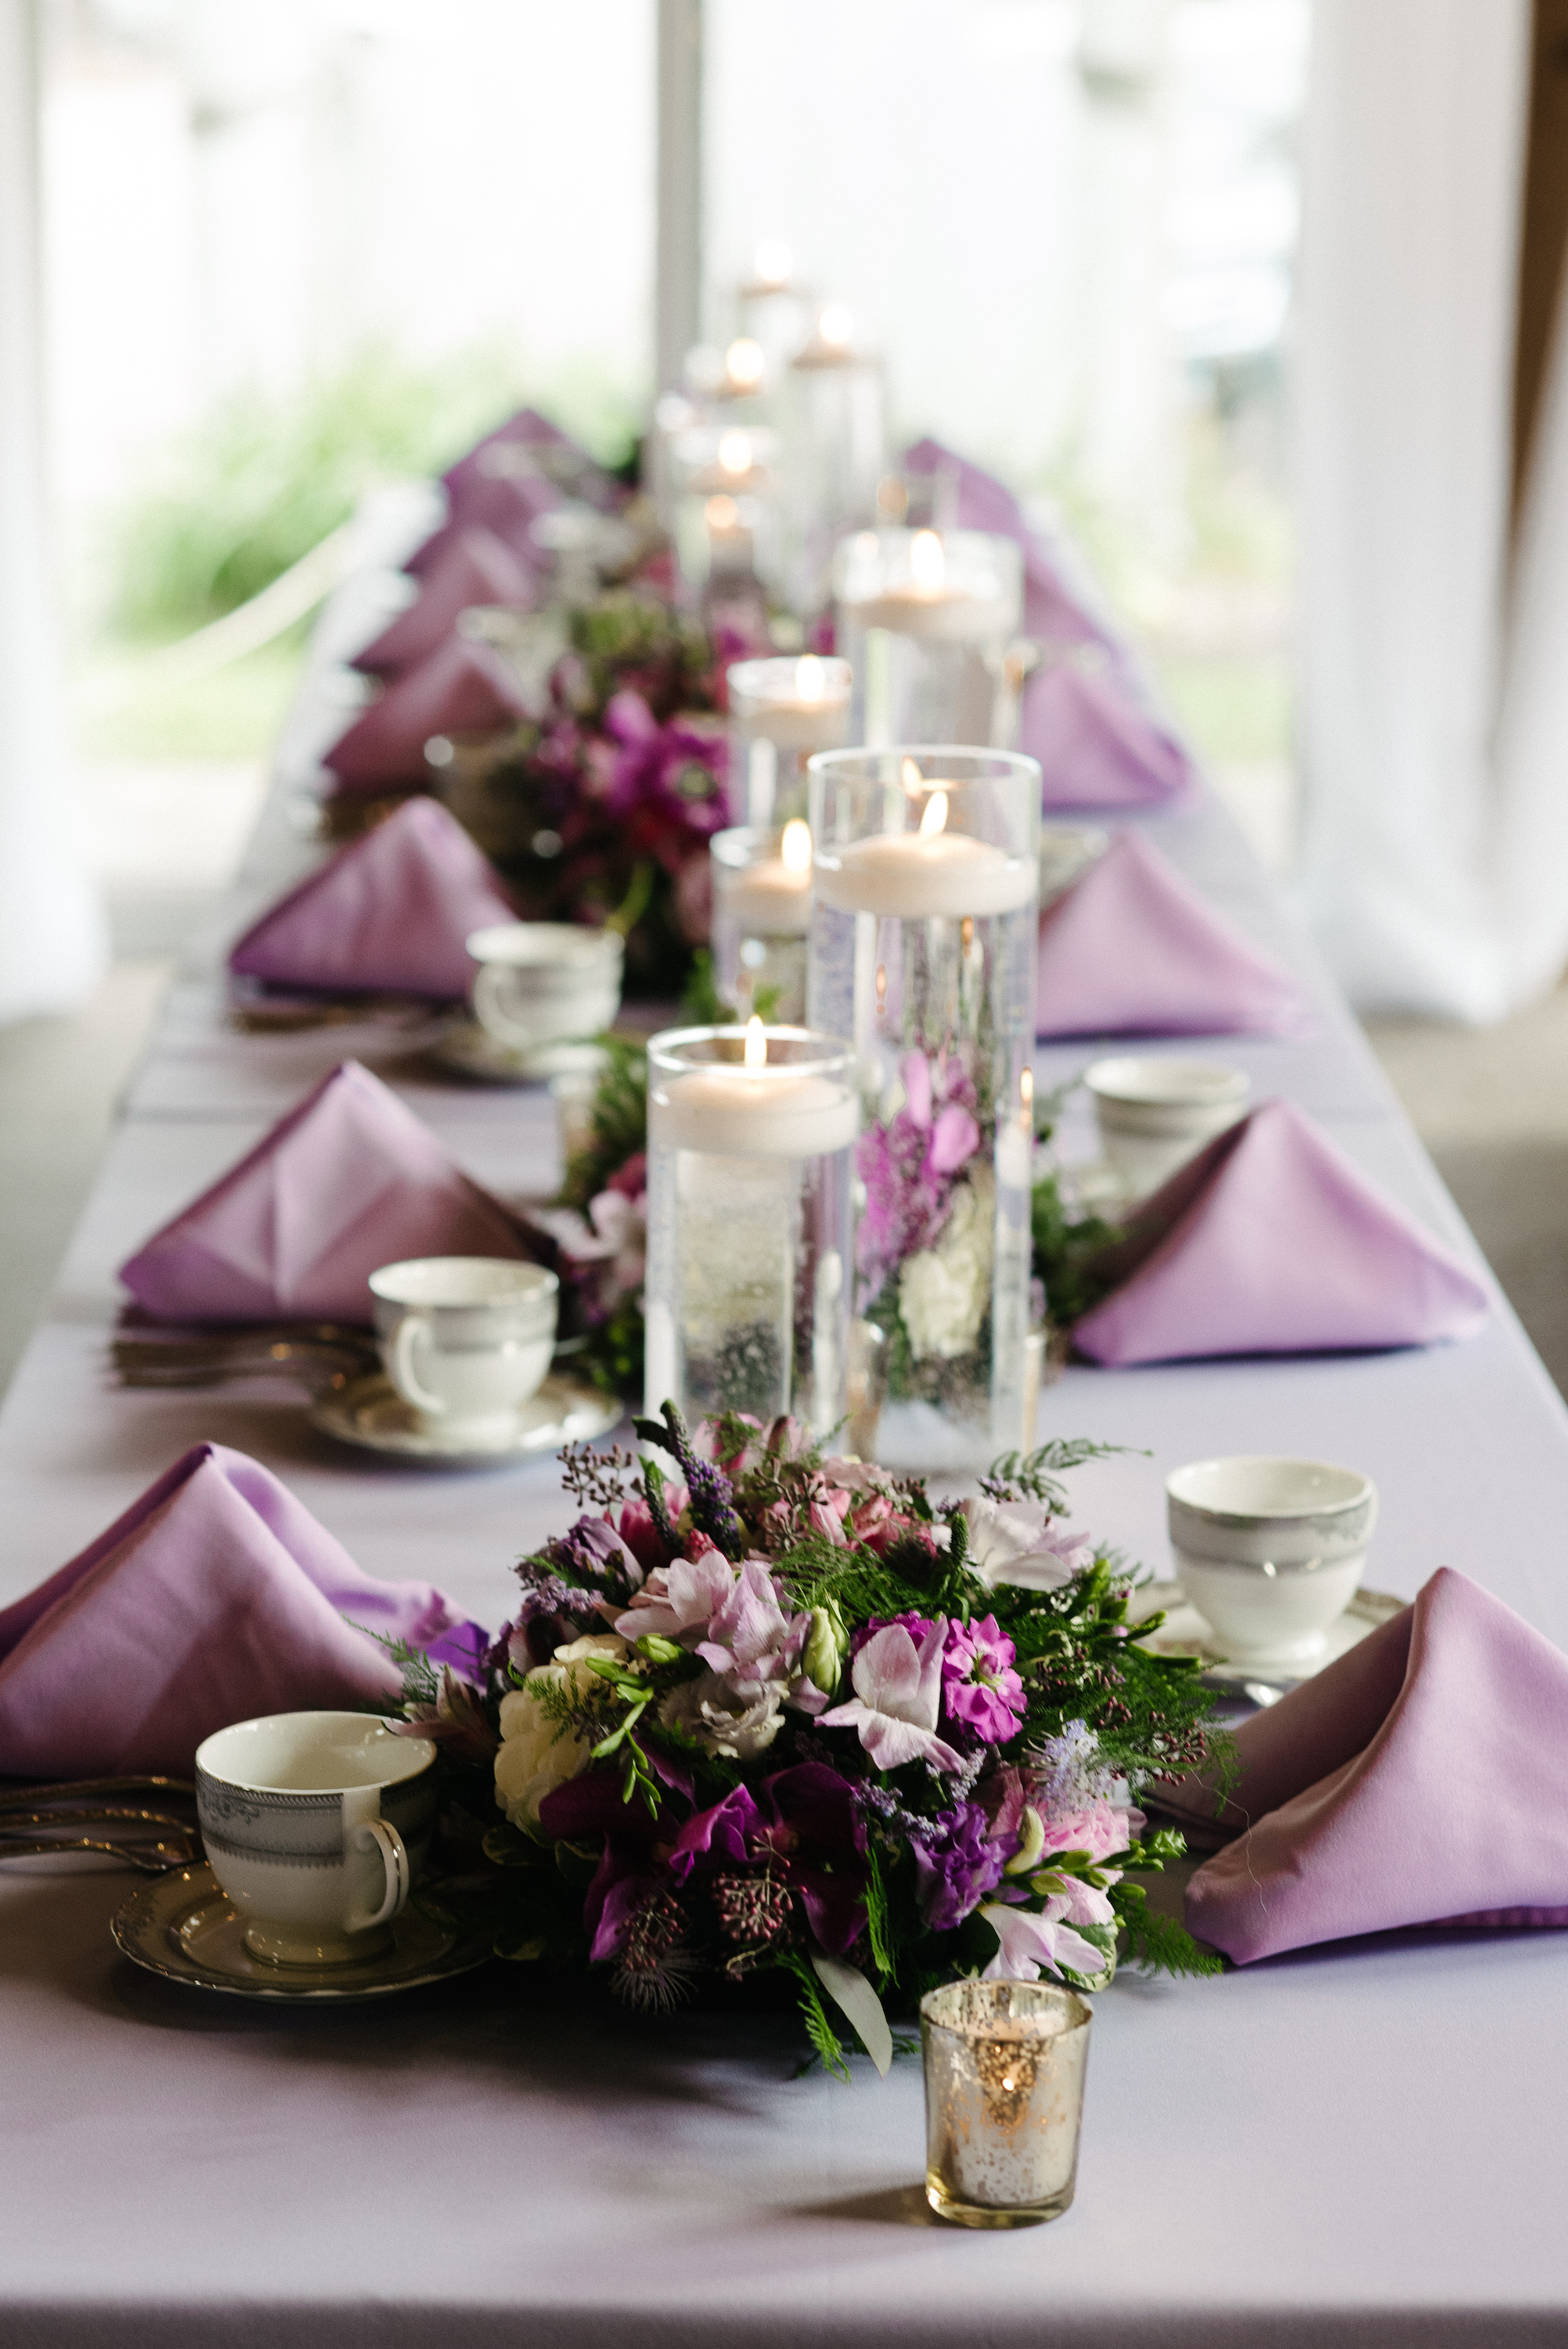 lavender table linen with matching napkins, hurricane vase floating candles    Dillinger Studios Minneapolis Photographer   Mexican American fusion wedding   Sixpence Events & Planning Minnesota wedding planner .jpg